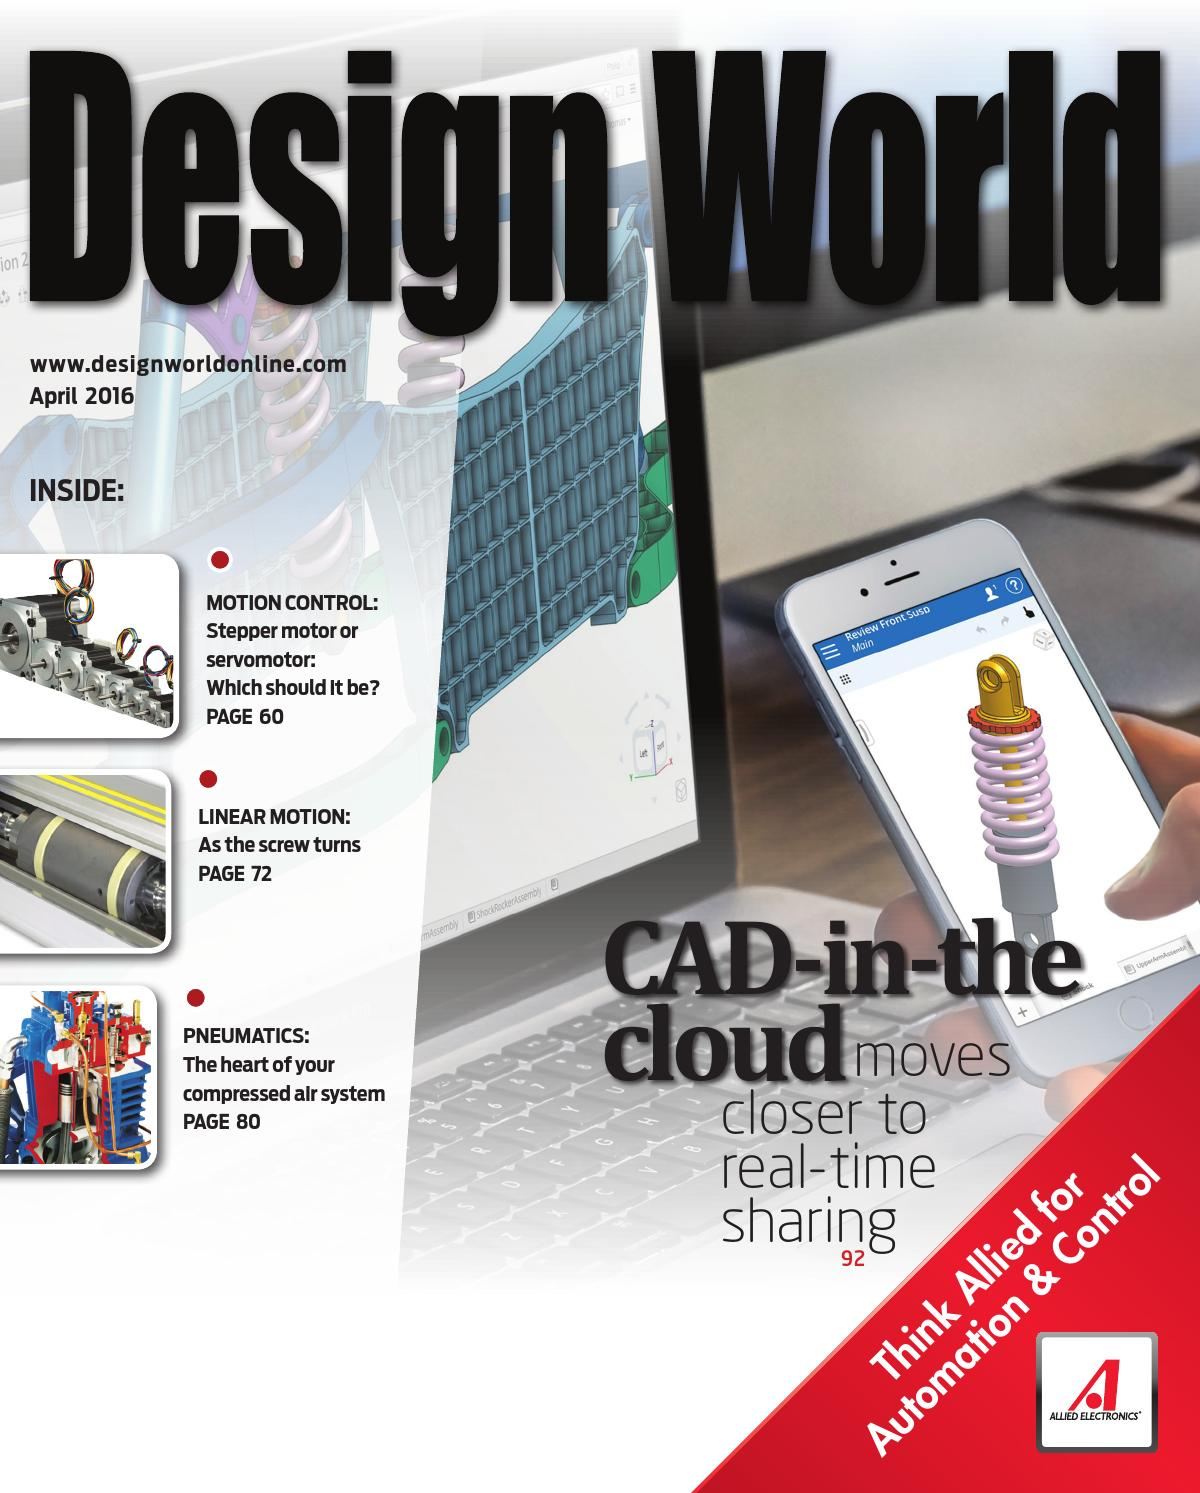 Design World April 2016 By Wtwh Media Llc Issuu Motor Additionally Bodine Electric Wiring Diagram Also Thermal